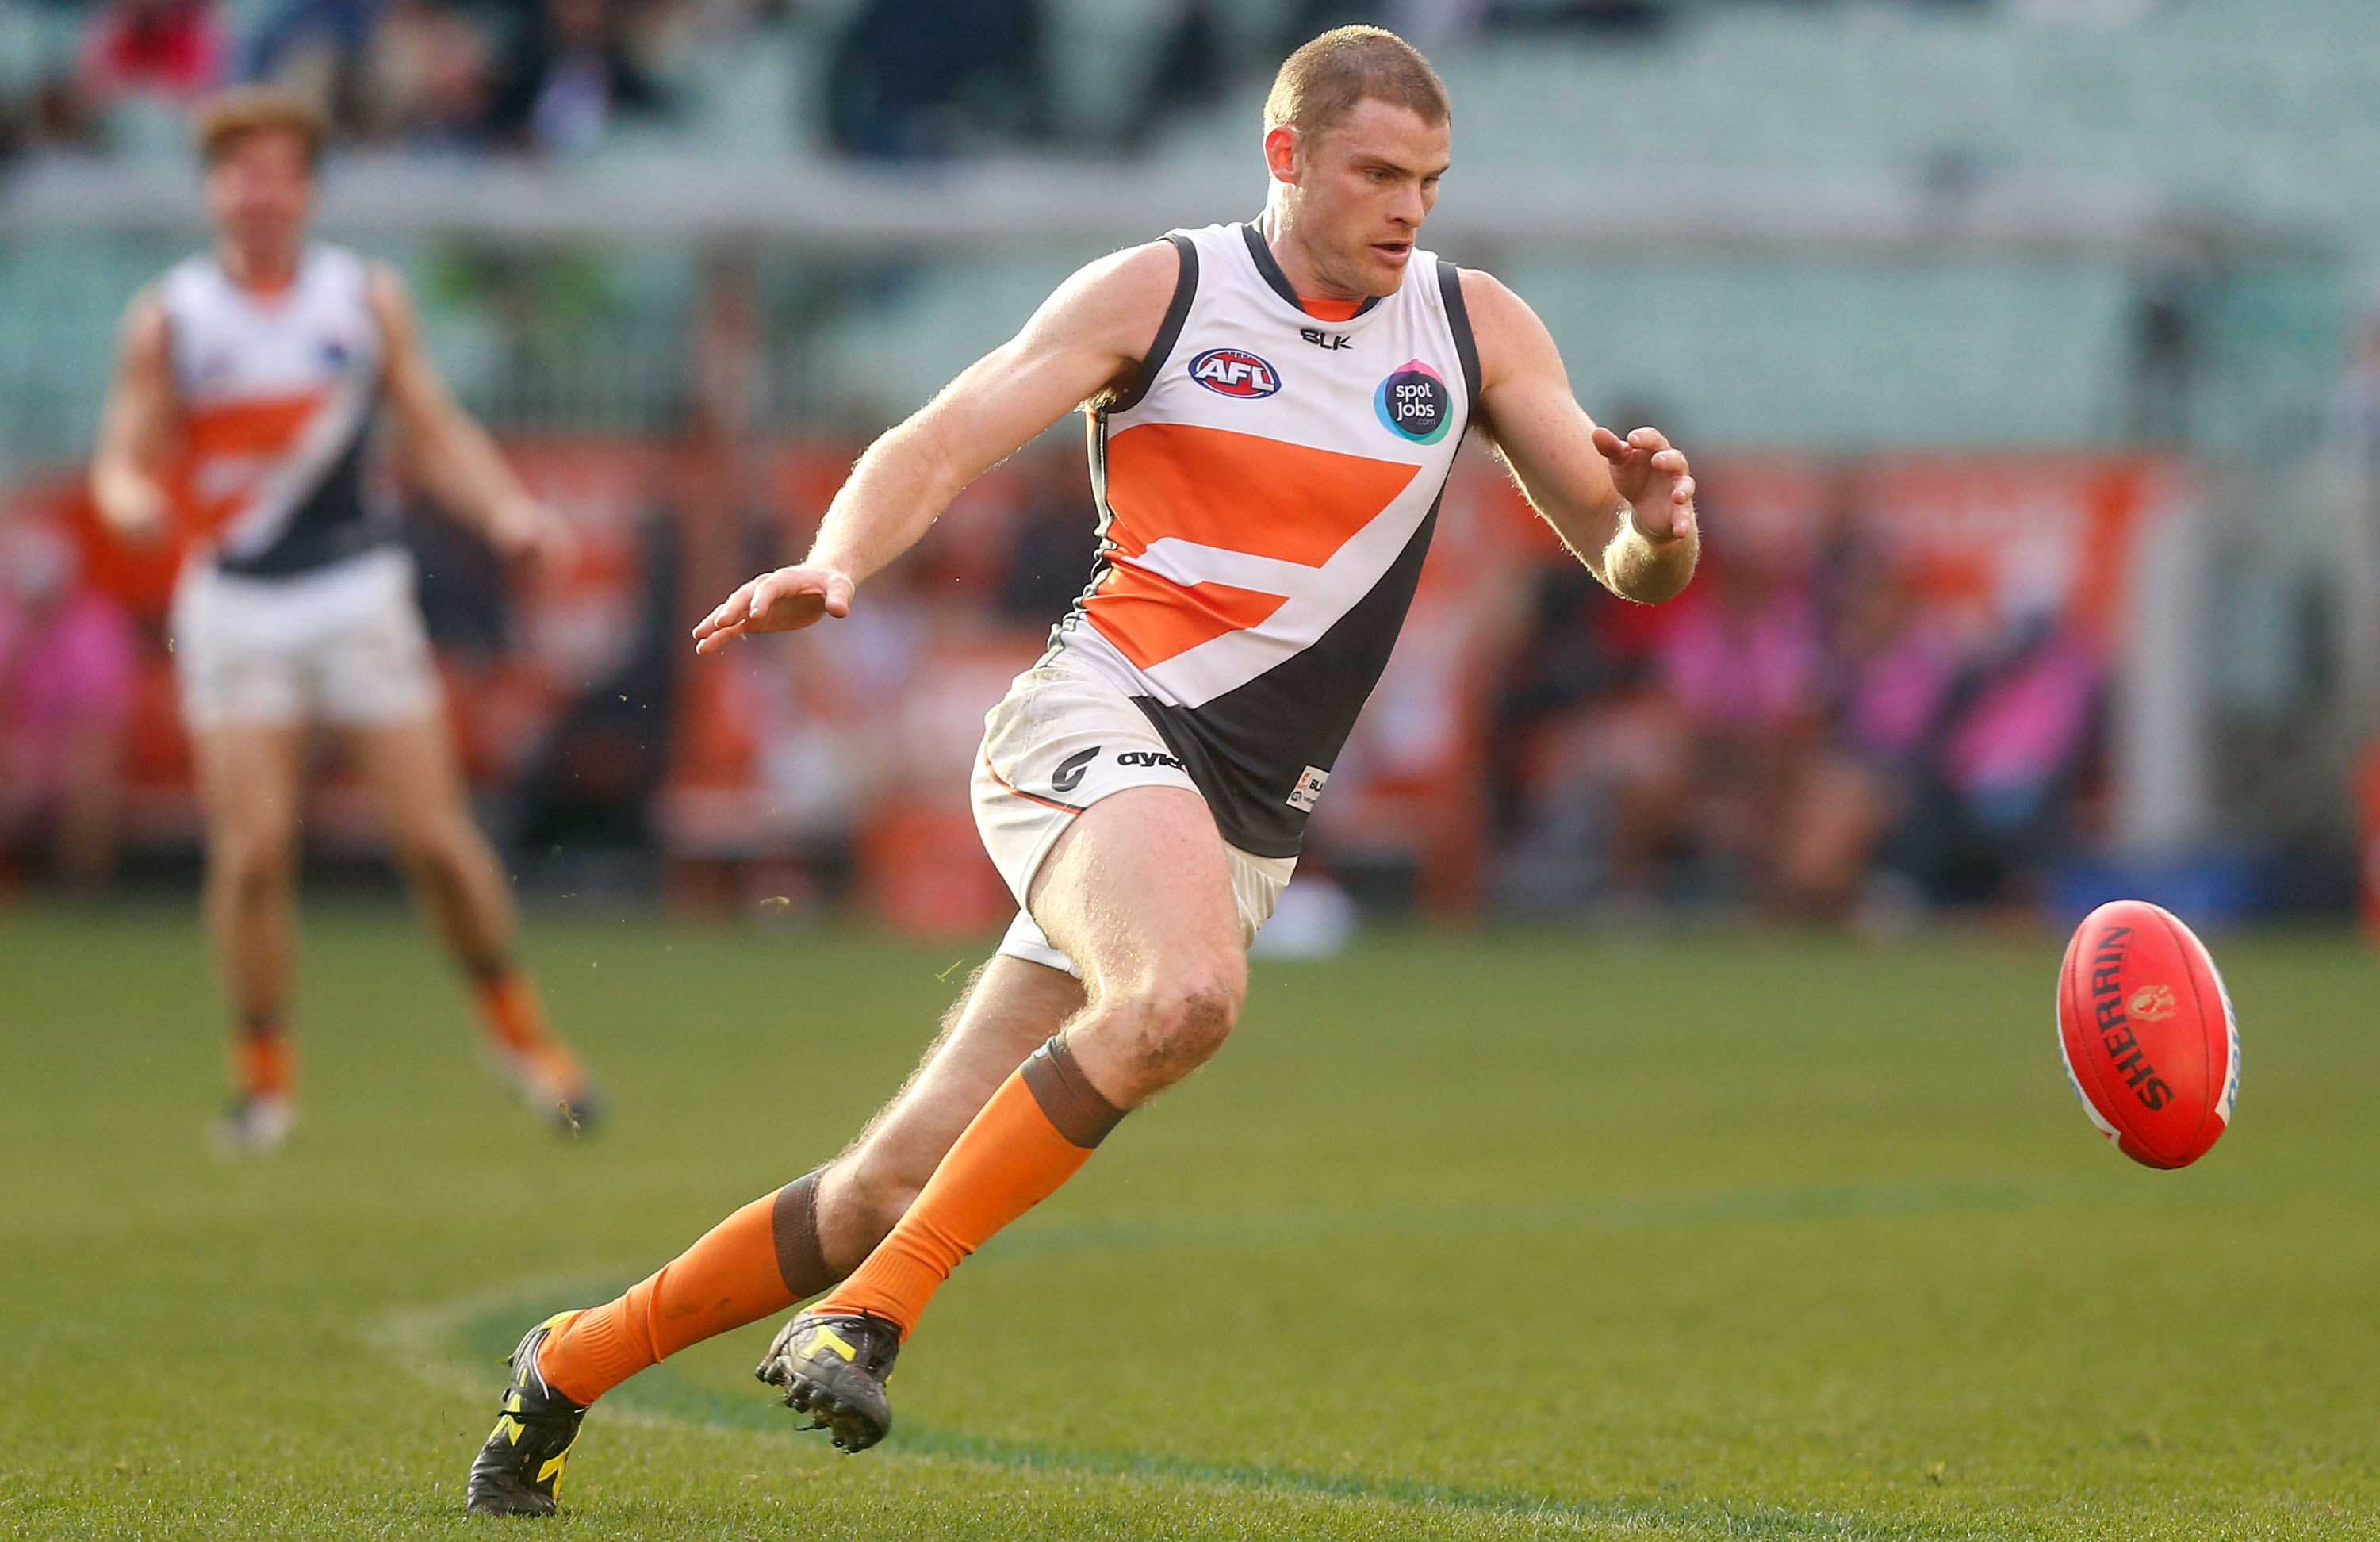 AFL 2015 Rd 11 - Collingwood v GWS Giants